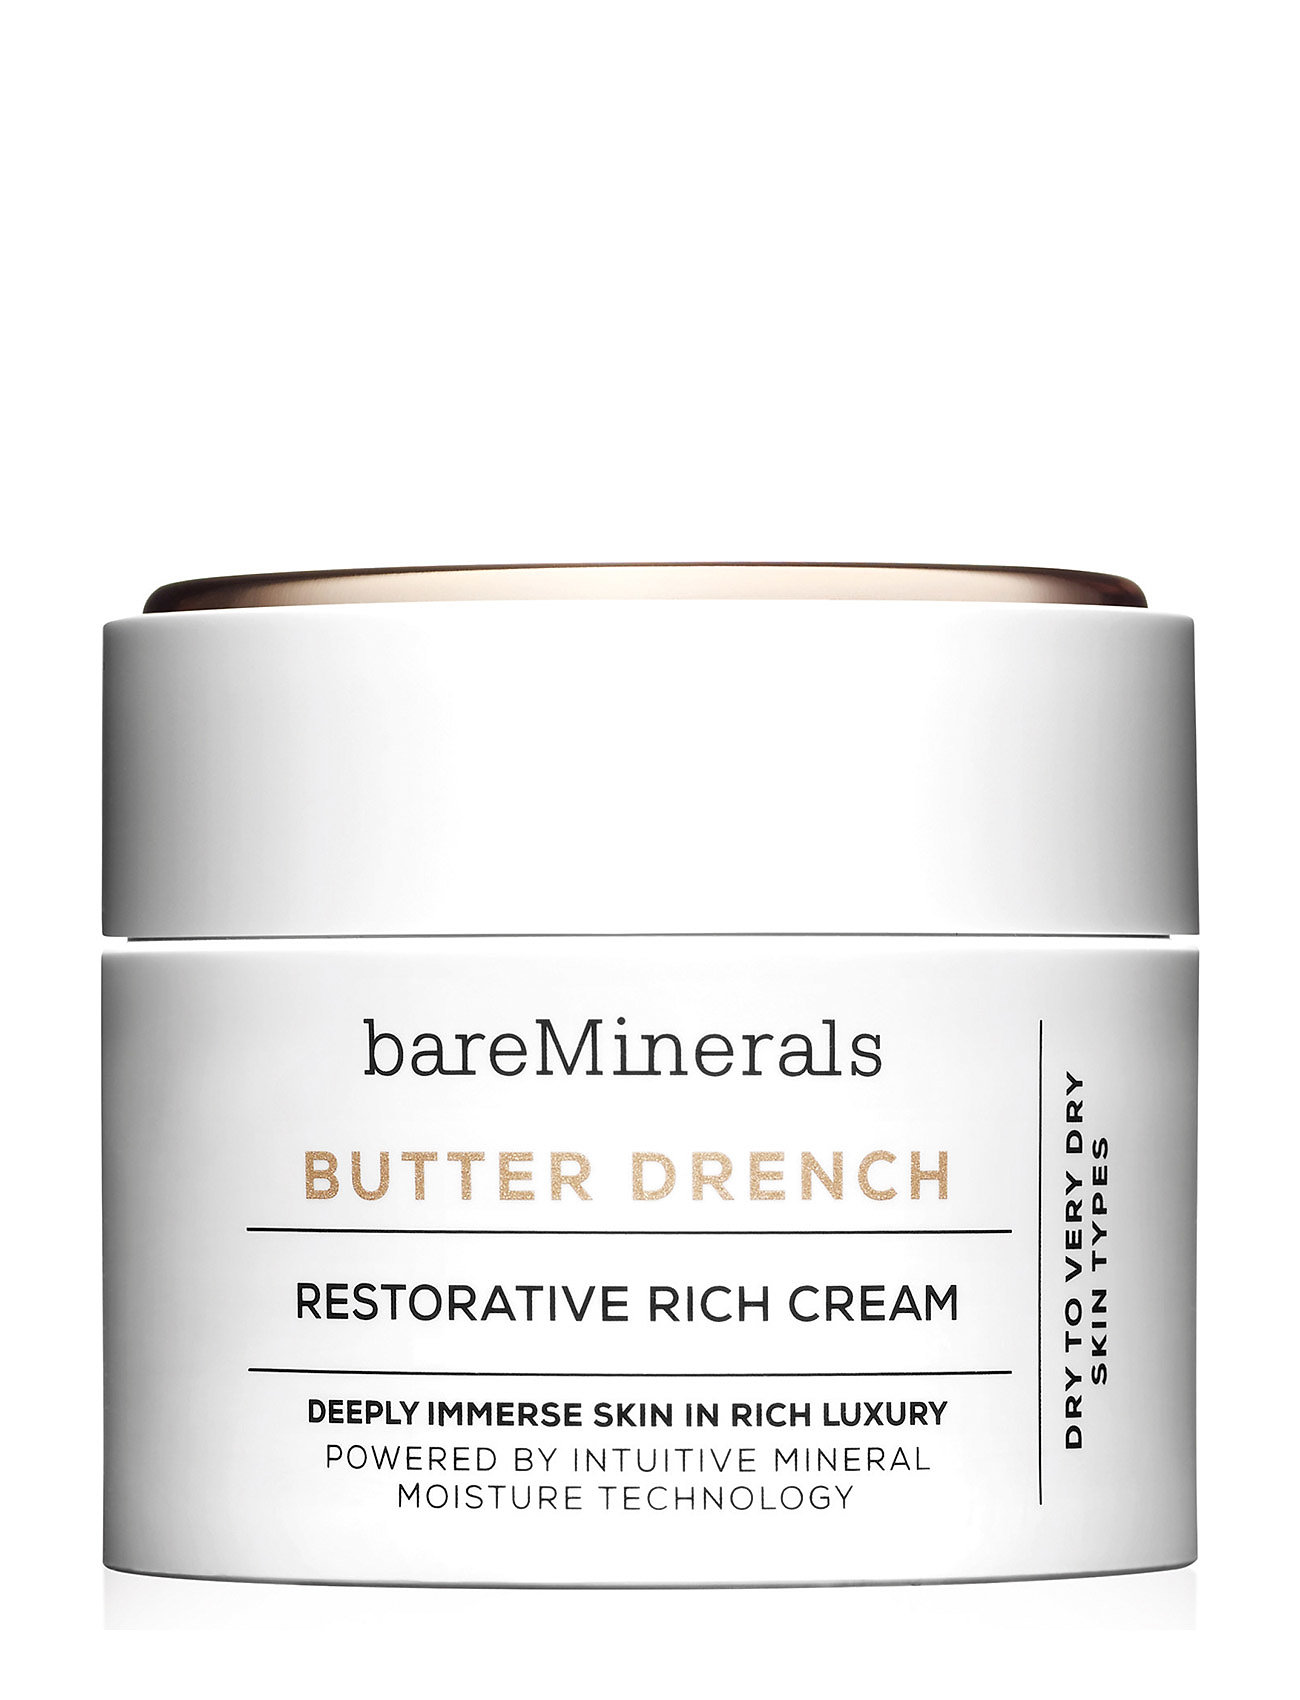 Image of Butter Drench Restorative Rich Cream Beauty WOMEN Skin Care Face Day Creams Nude BareMinerals (3406150303)